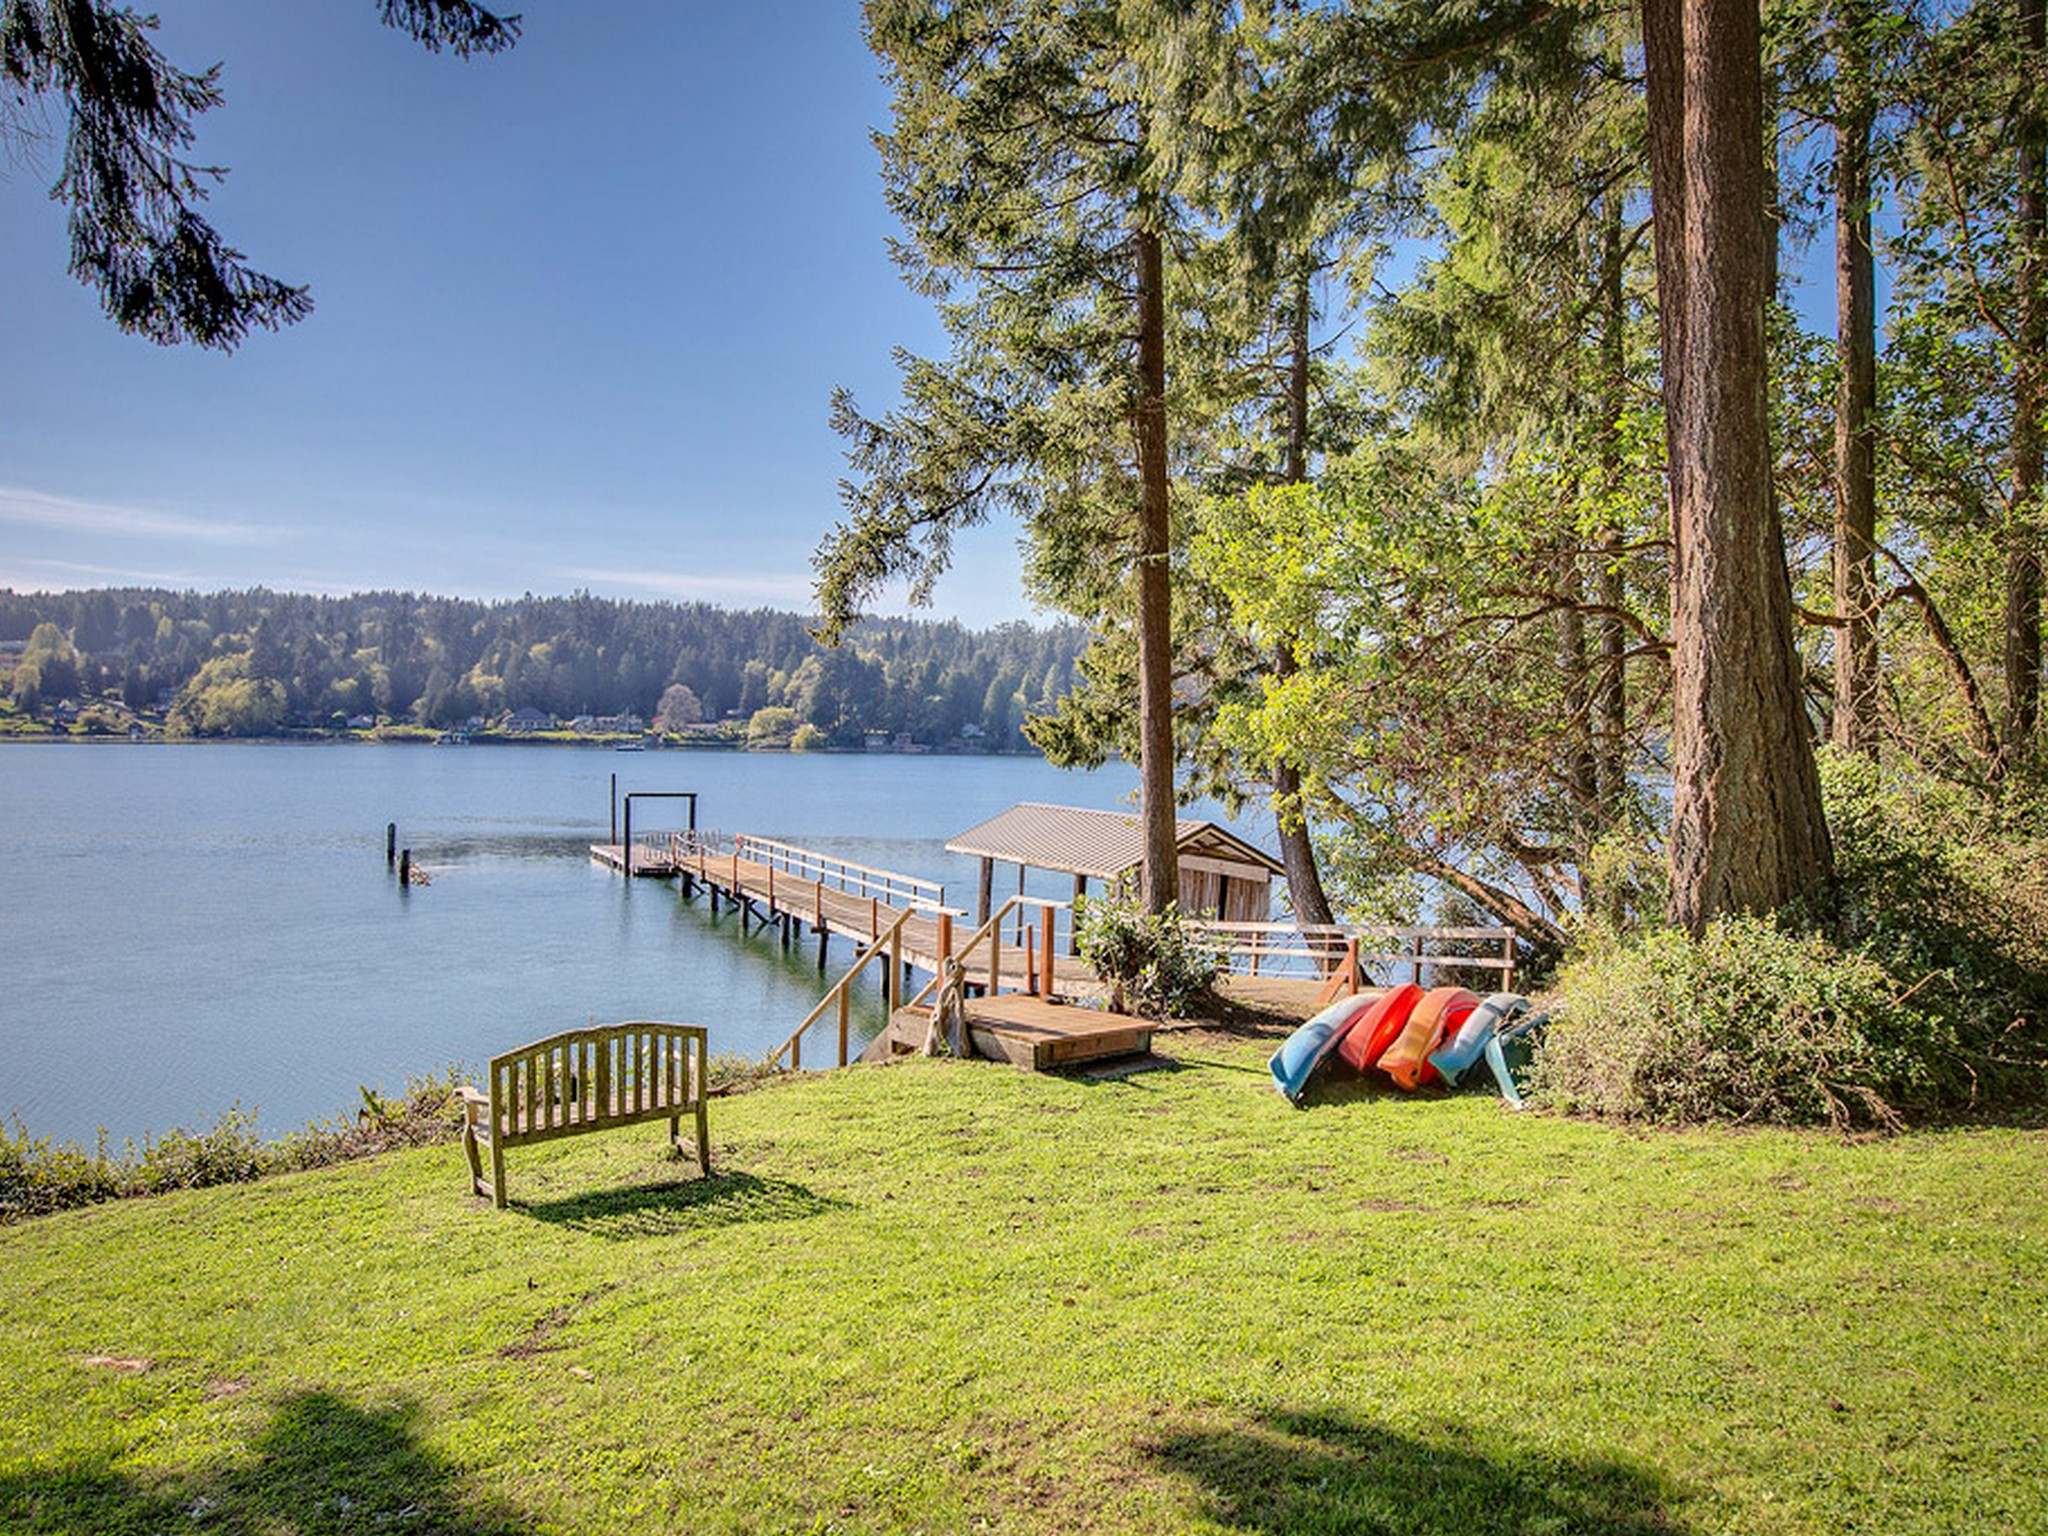 Single Family Home for Sale at Indianola Waterfront 20925 Indianola Rd Poulsbo, Washington 98370 United States